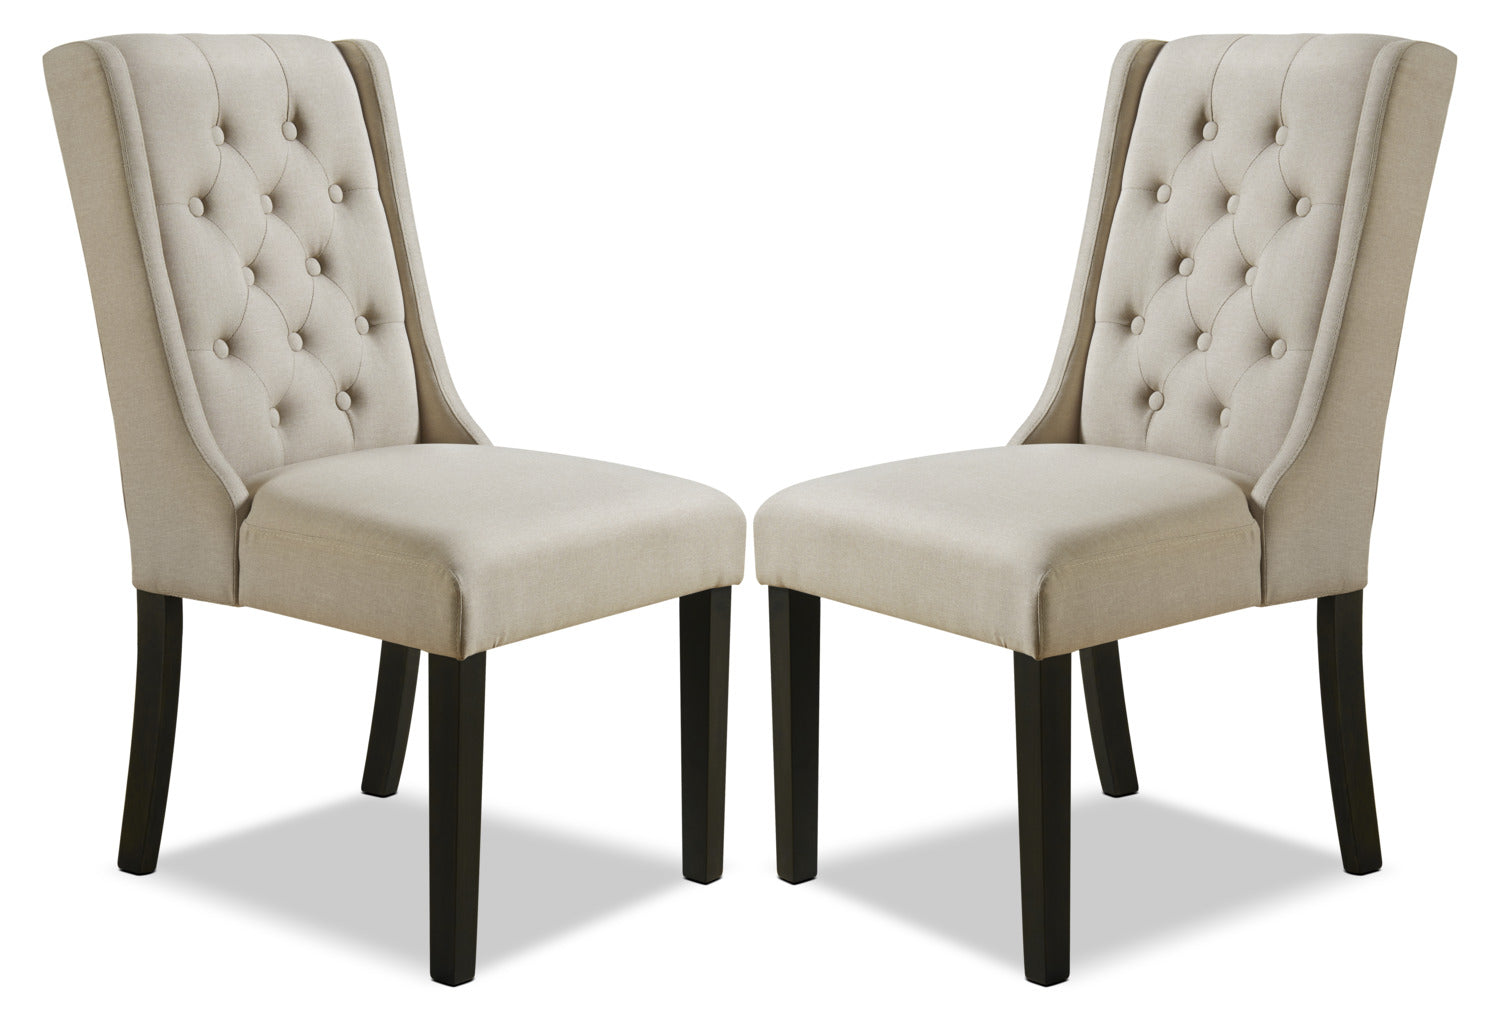 york wingback dining chair set of 2 beigechaise oreilles de salle manger york ensemble de 2 beige